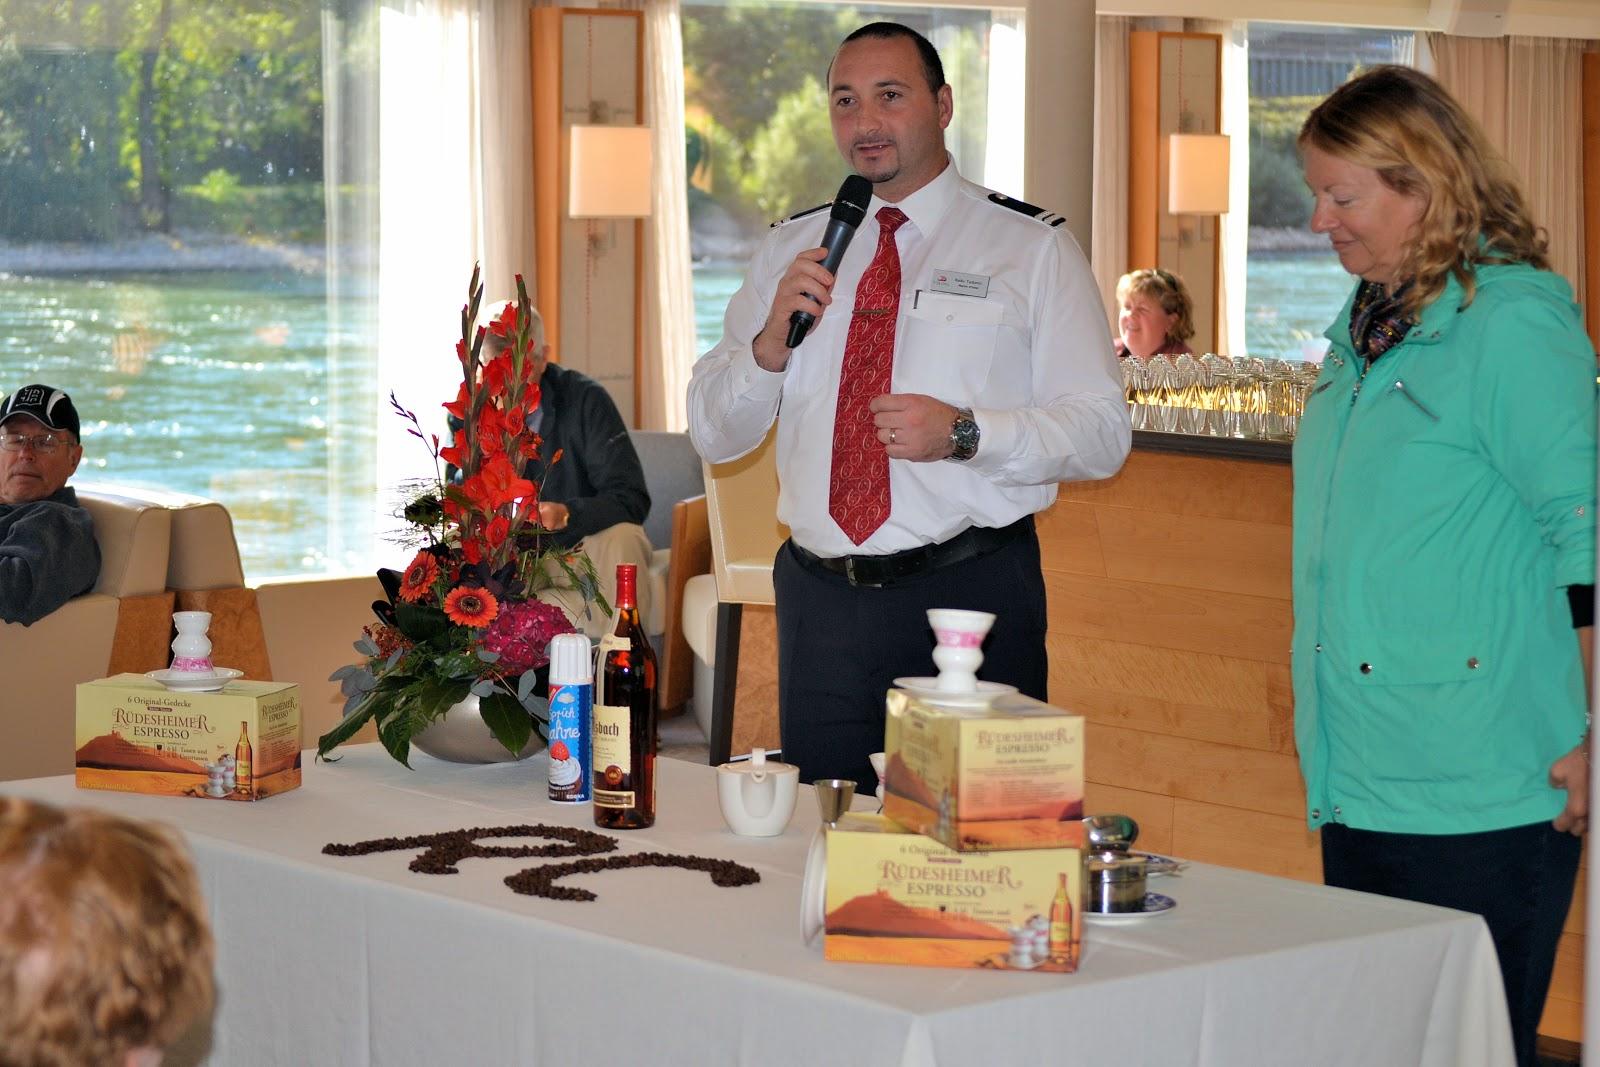 Rüdesheim coffee-making demonstration in the Viking Lounge on board the Viking Mani.